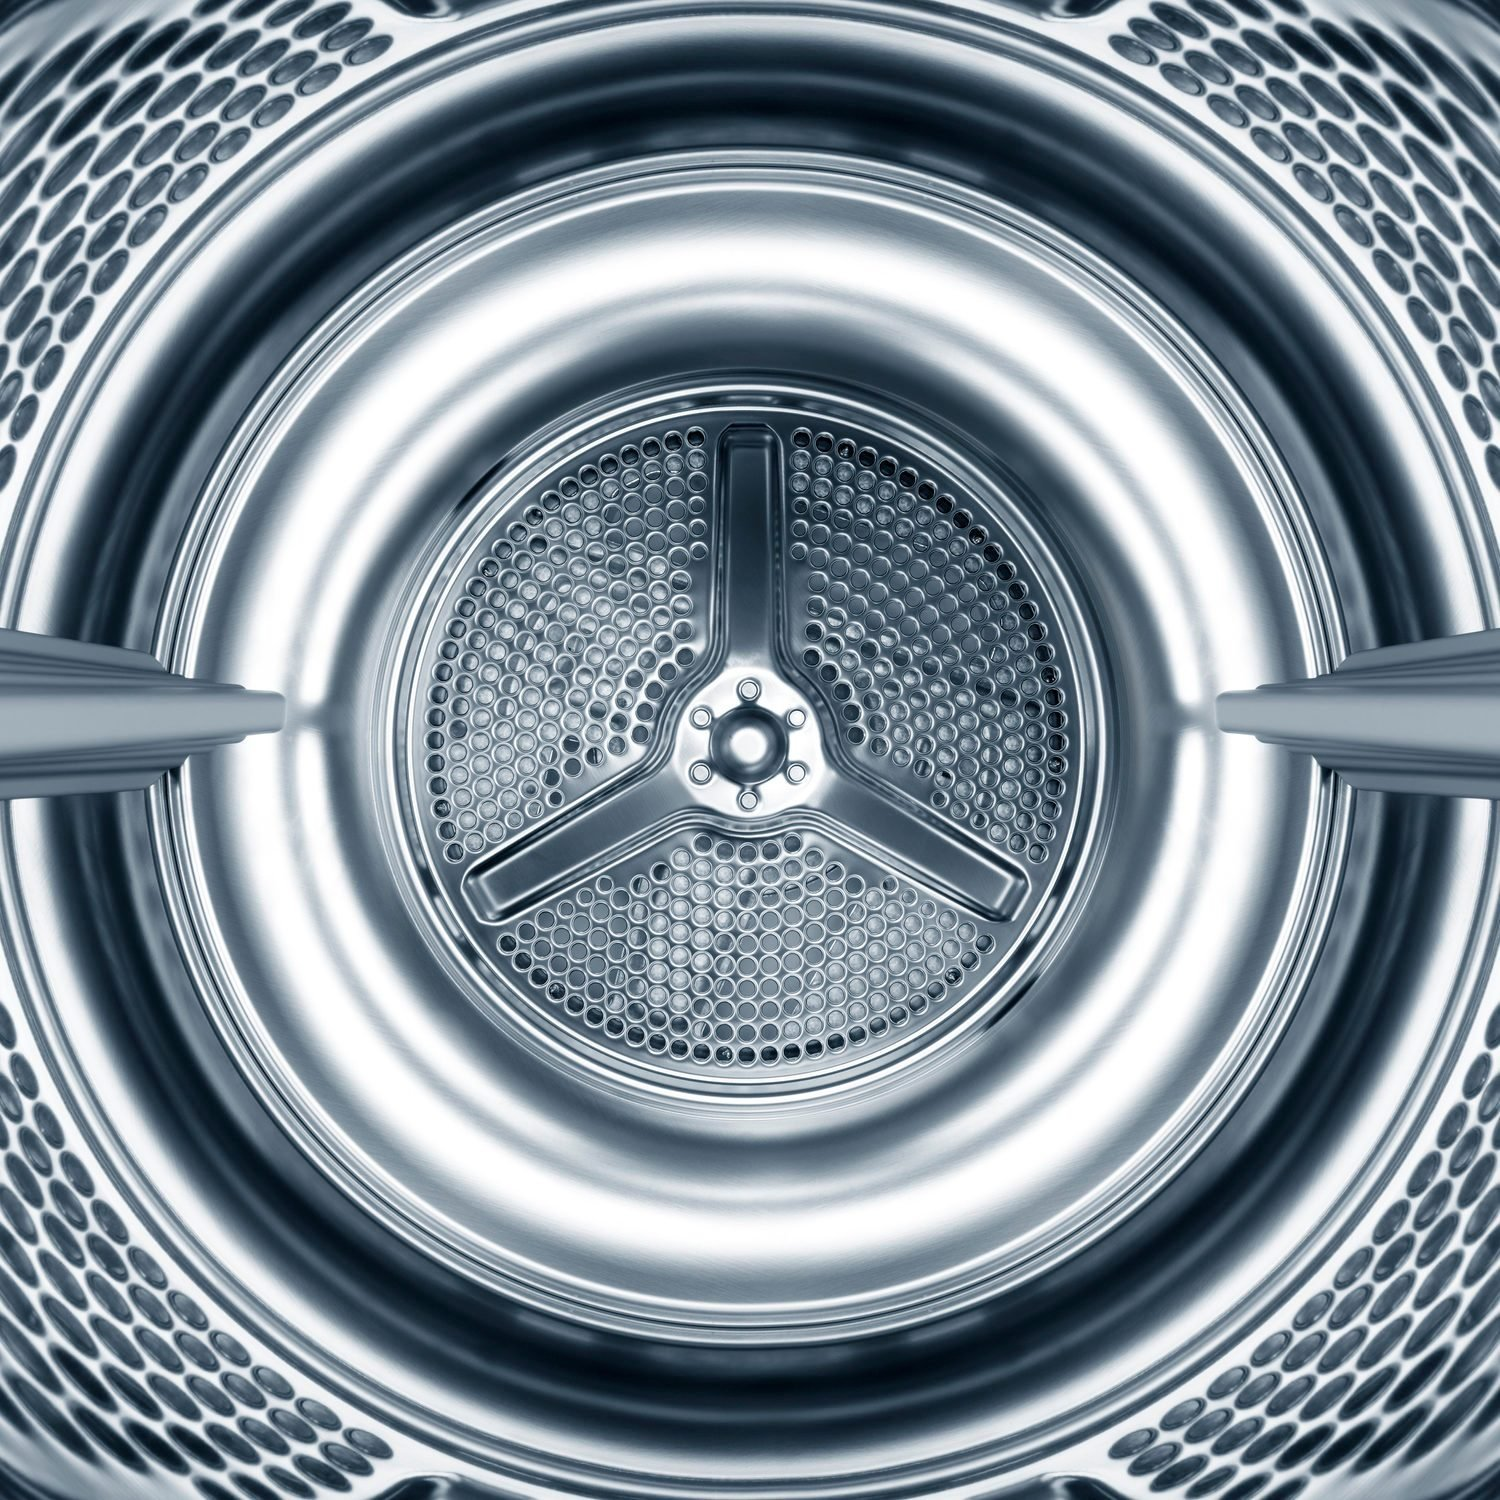 Inside the steel drum of a washing machine